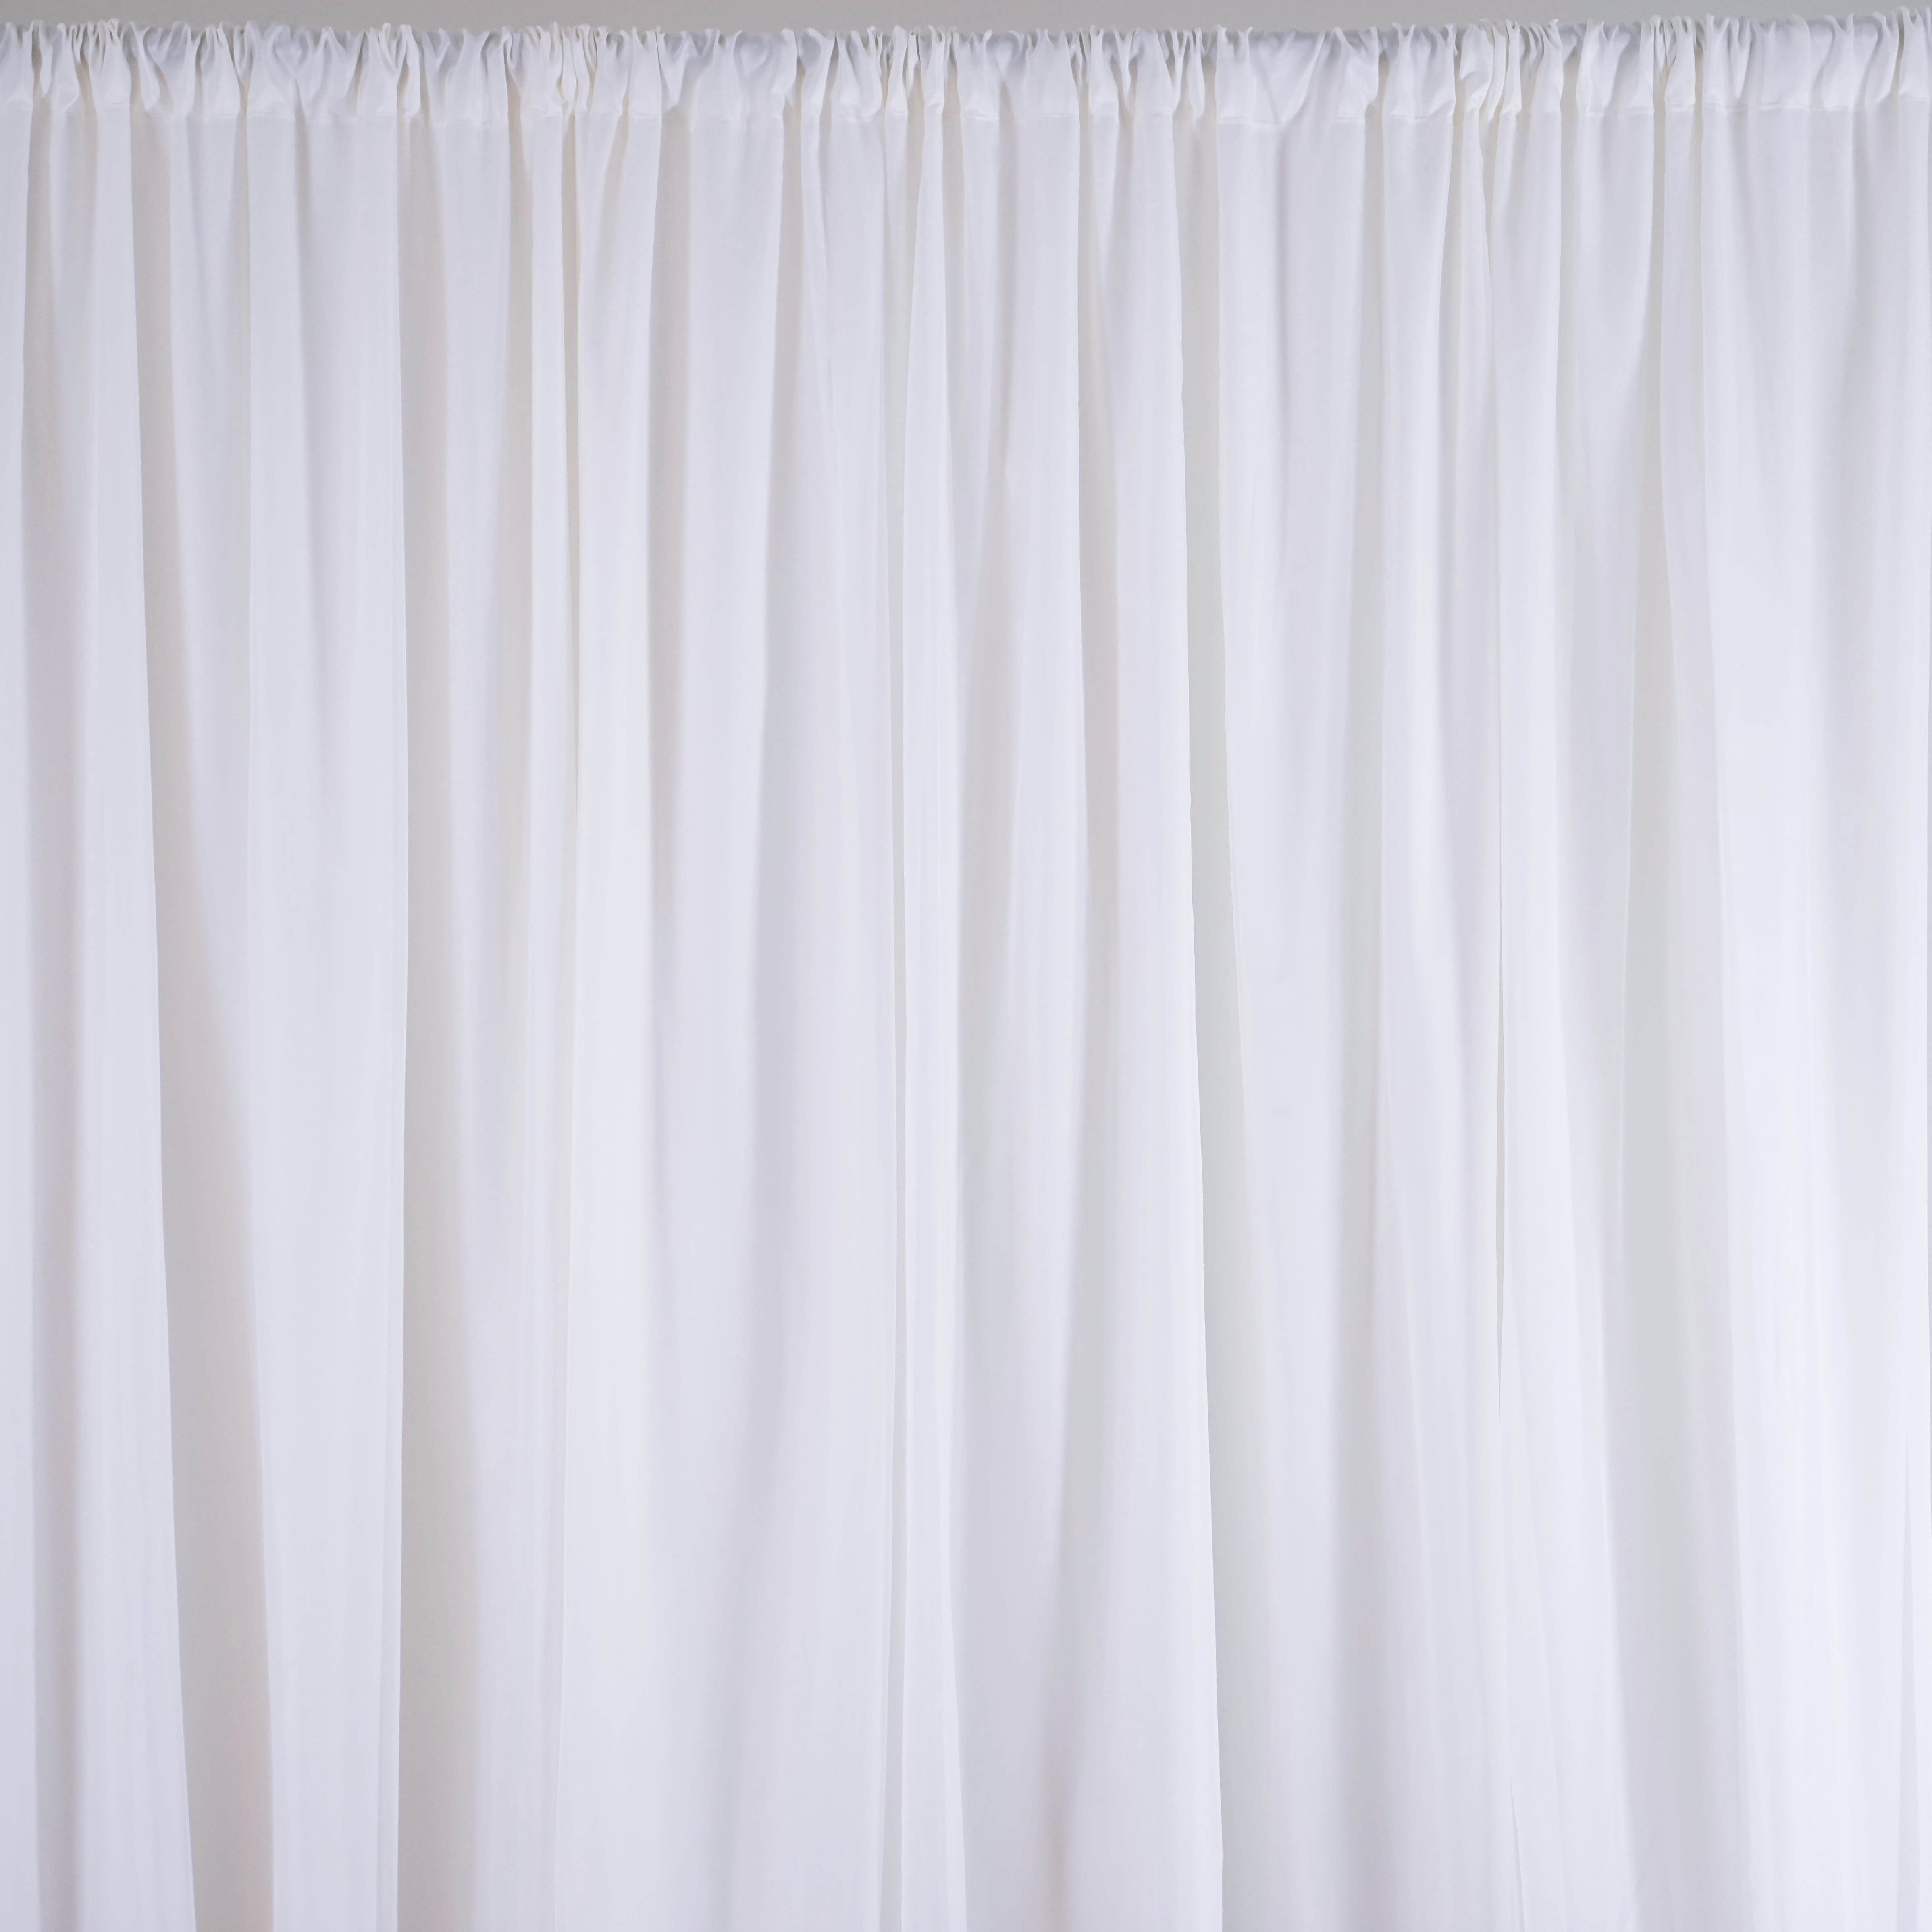 Awesome 20 Ft X 10 Ft WHITE Fabric BACKDROP